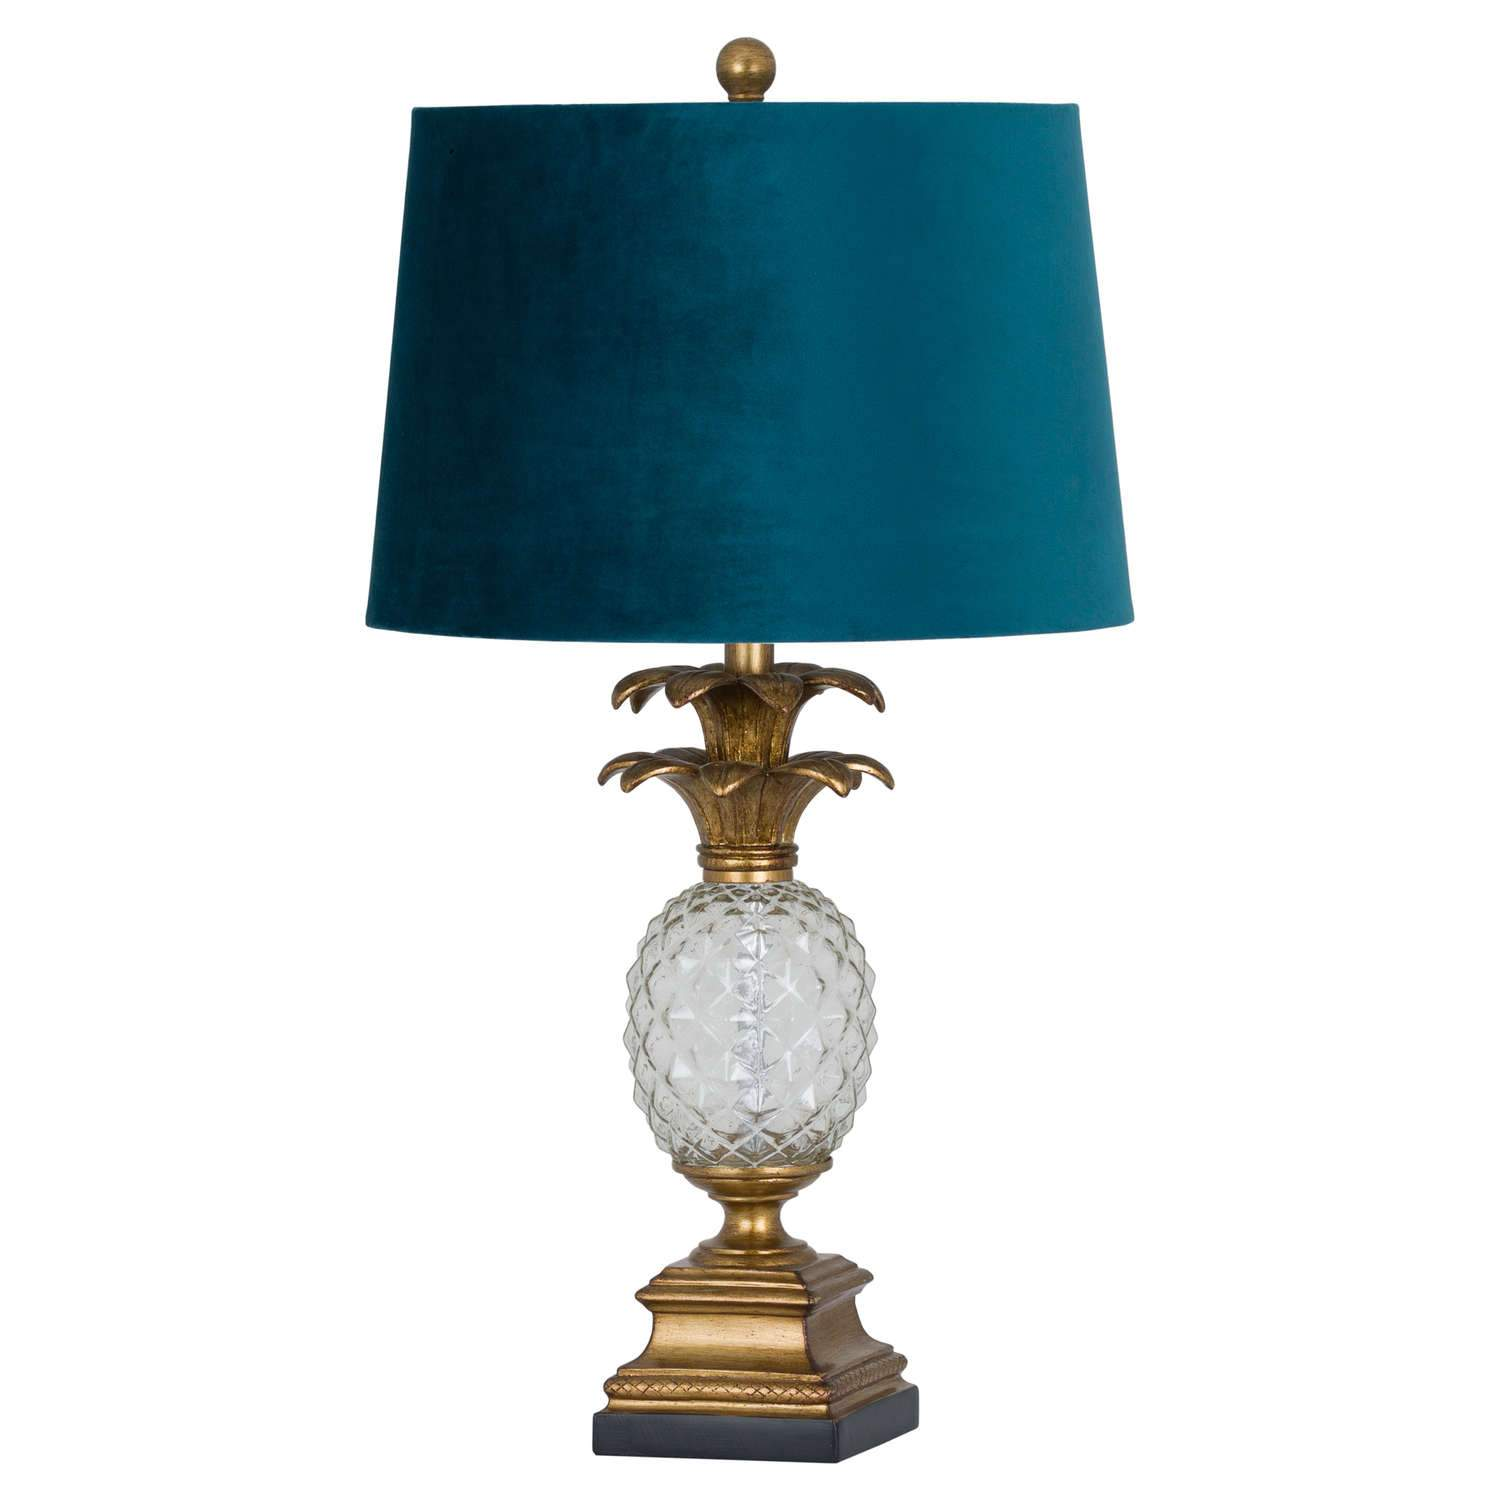 Harvey Collection Ananas Glass Pineapple Table Lamp With Teal Velvet Shade